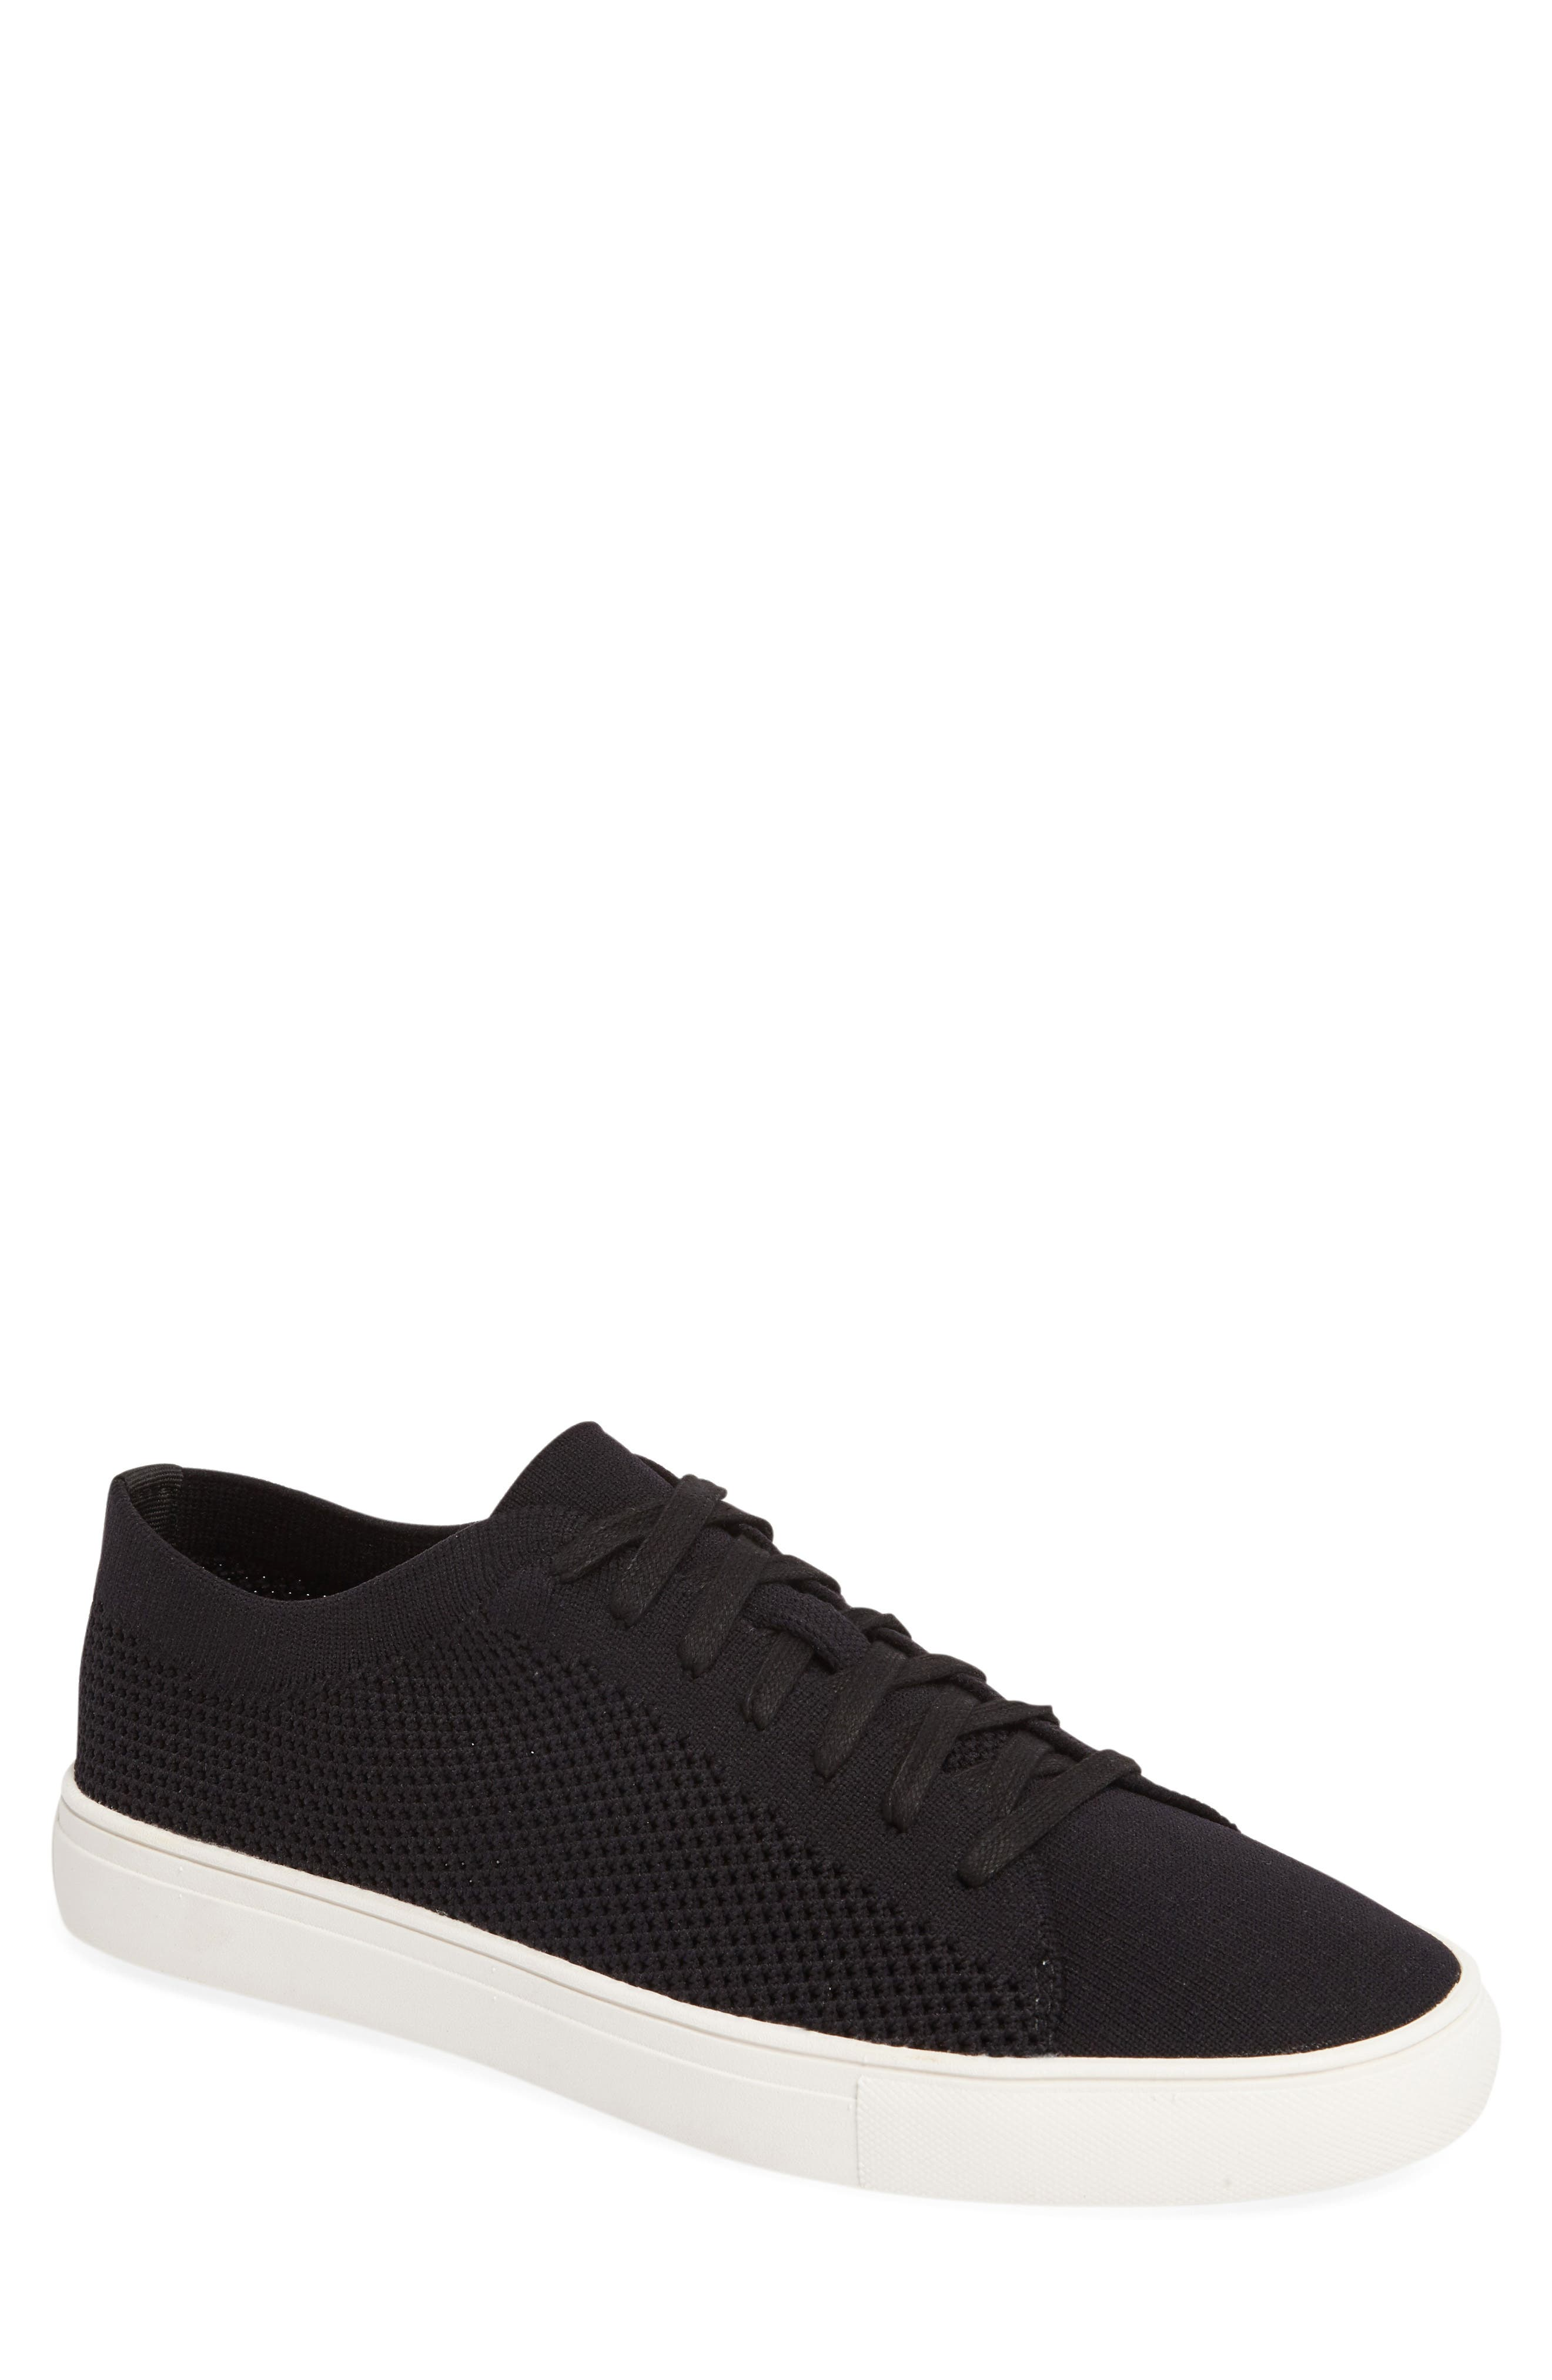 Main Image - Reaction Kenneth Cole On the Road Woven Sneaker (Men)